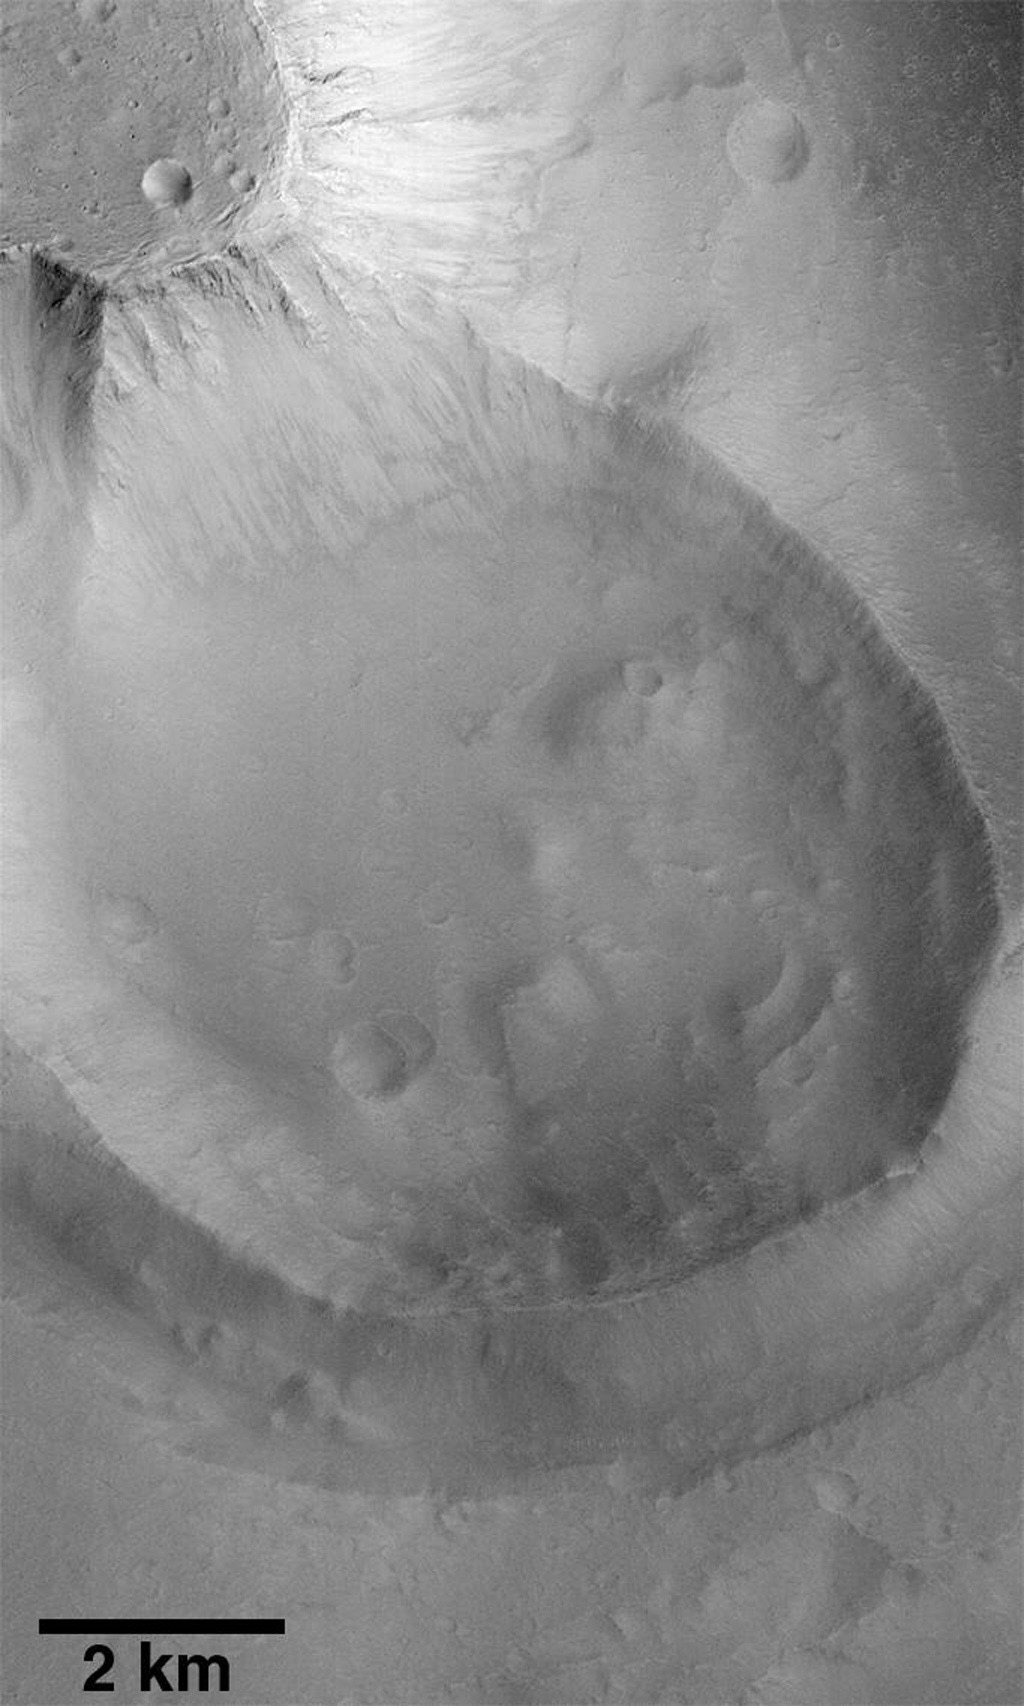 This image taken on June 4, 1998 by NASA's Mars Global Surveyor shows Kasei Vallis, a system of giant channels thought to have been carved by catastrophic floods that occurred more than a billion years ago.